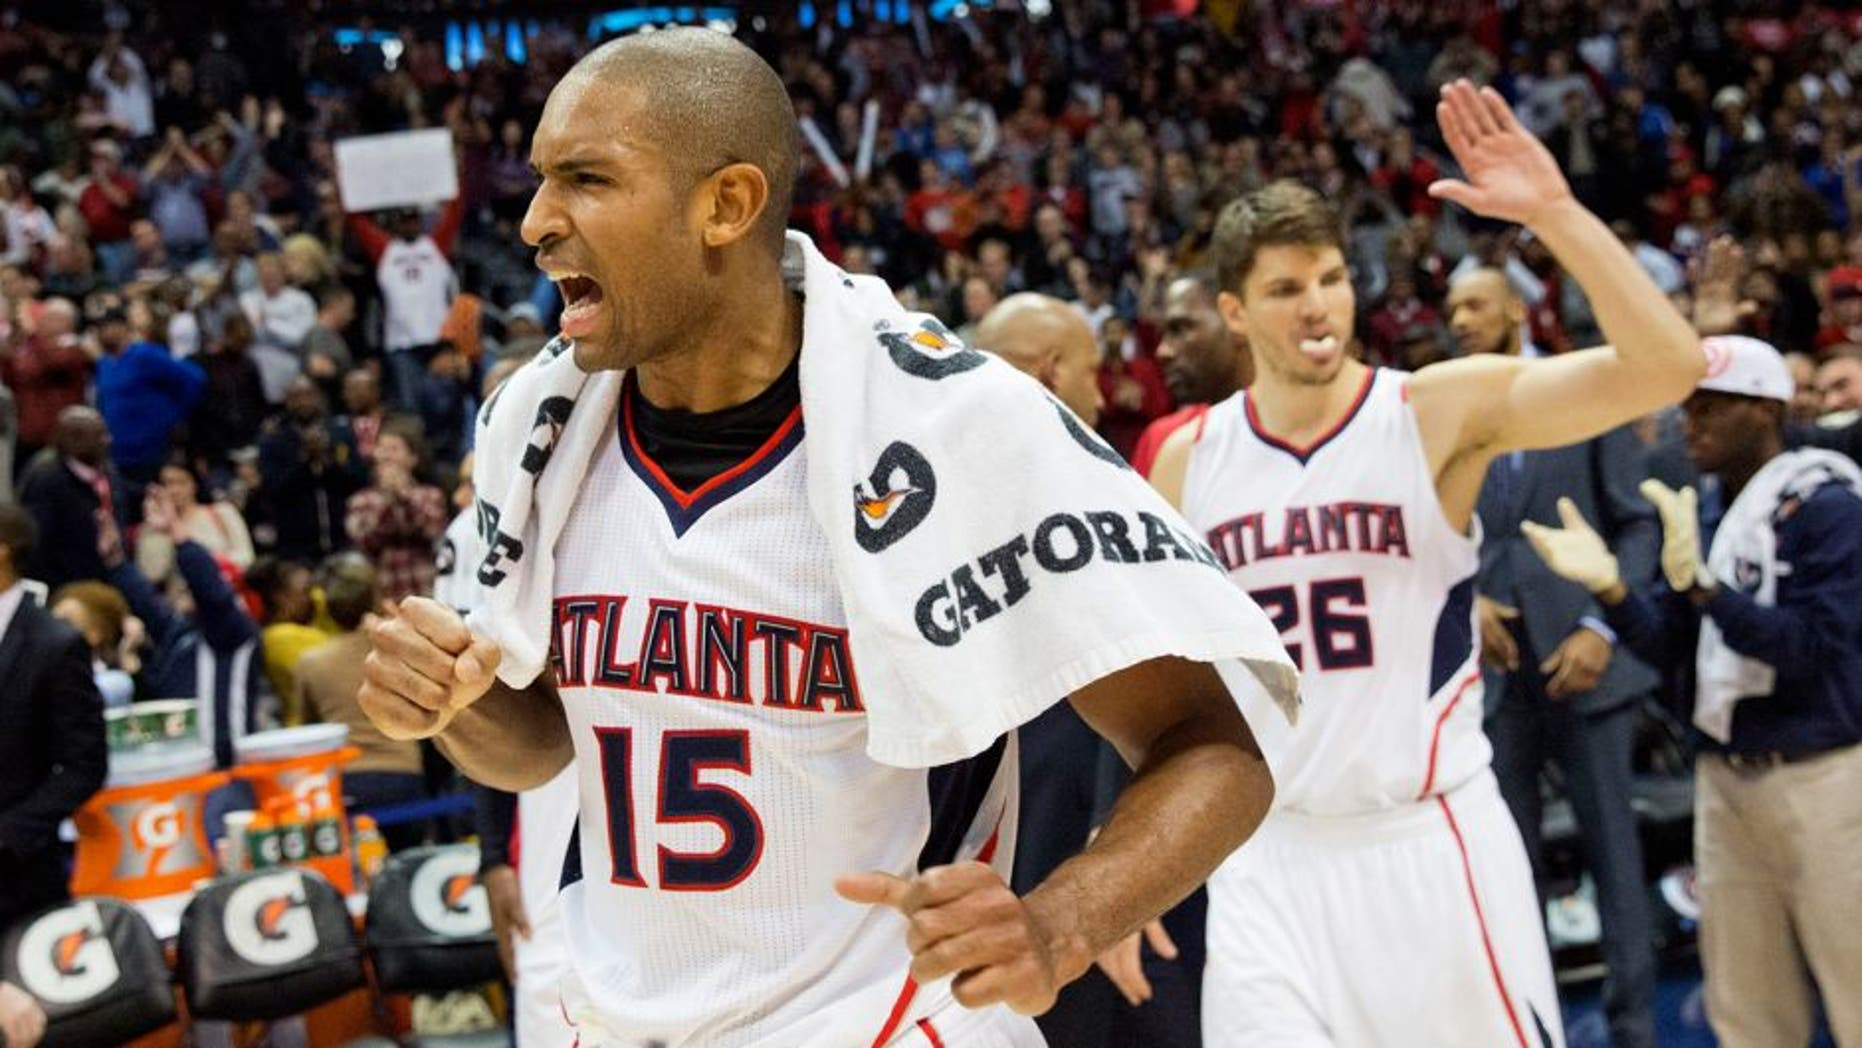 Atlanta Hawks' Al Horford, left, celebrates along with teammate Kyle Korver, right, after they defeated the Oklahoma City Thunder 103-93 to set a franchise record for most consecutive wins at 15 in an NBA basketball game, Friday, Jan. 23, 2015, in Atlanta. (AP Photo/David Goldman)